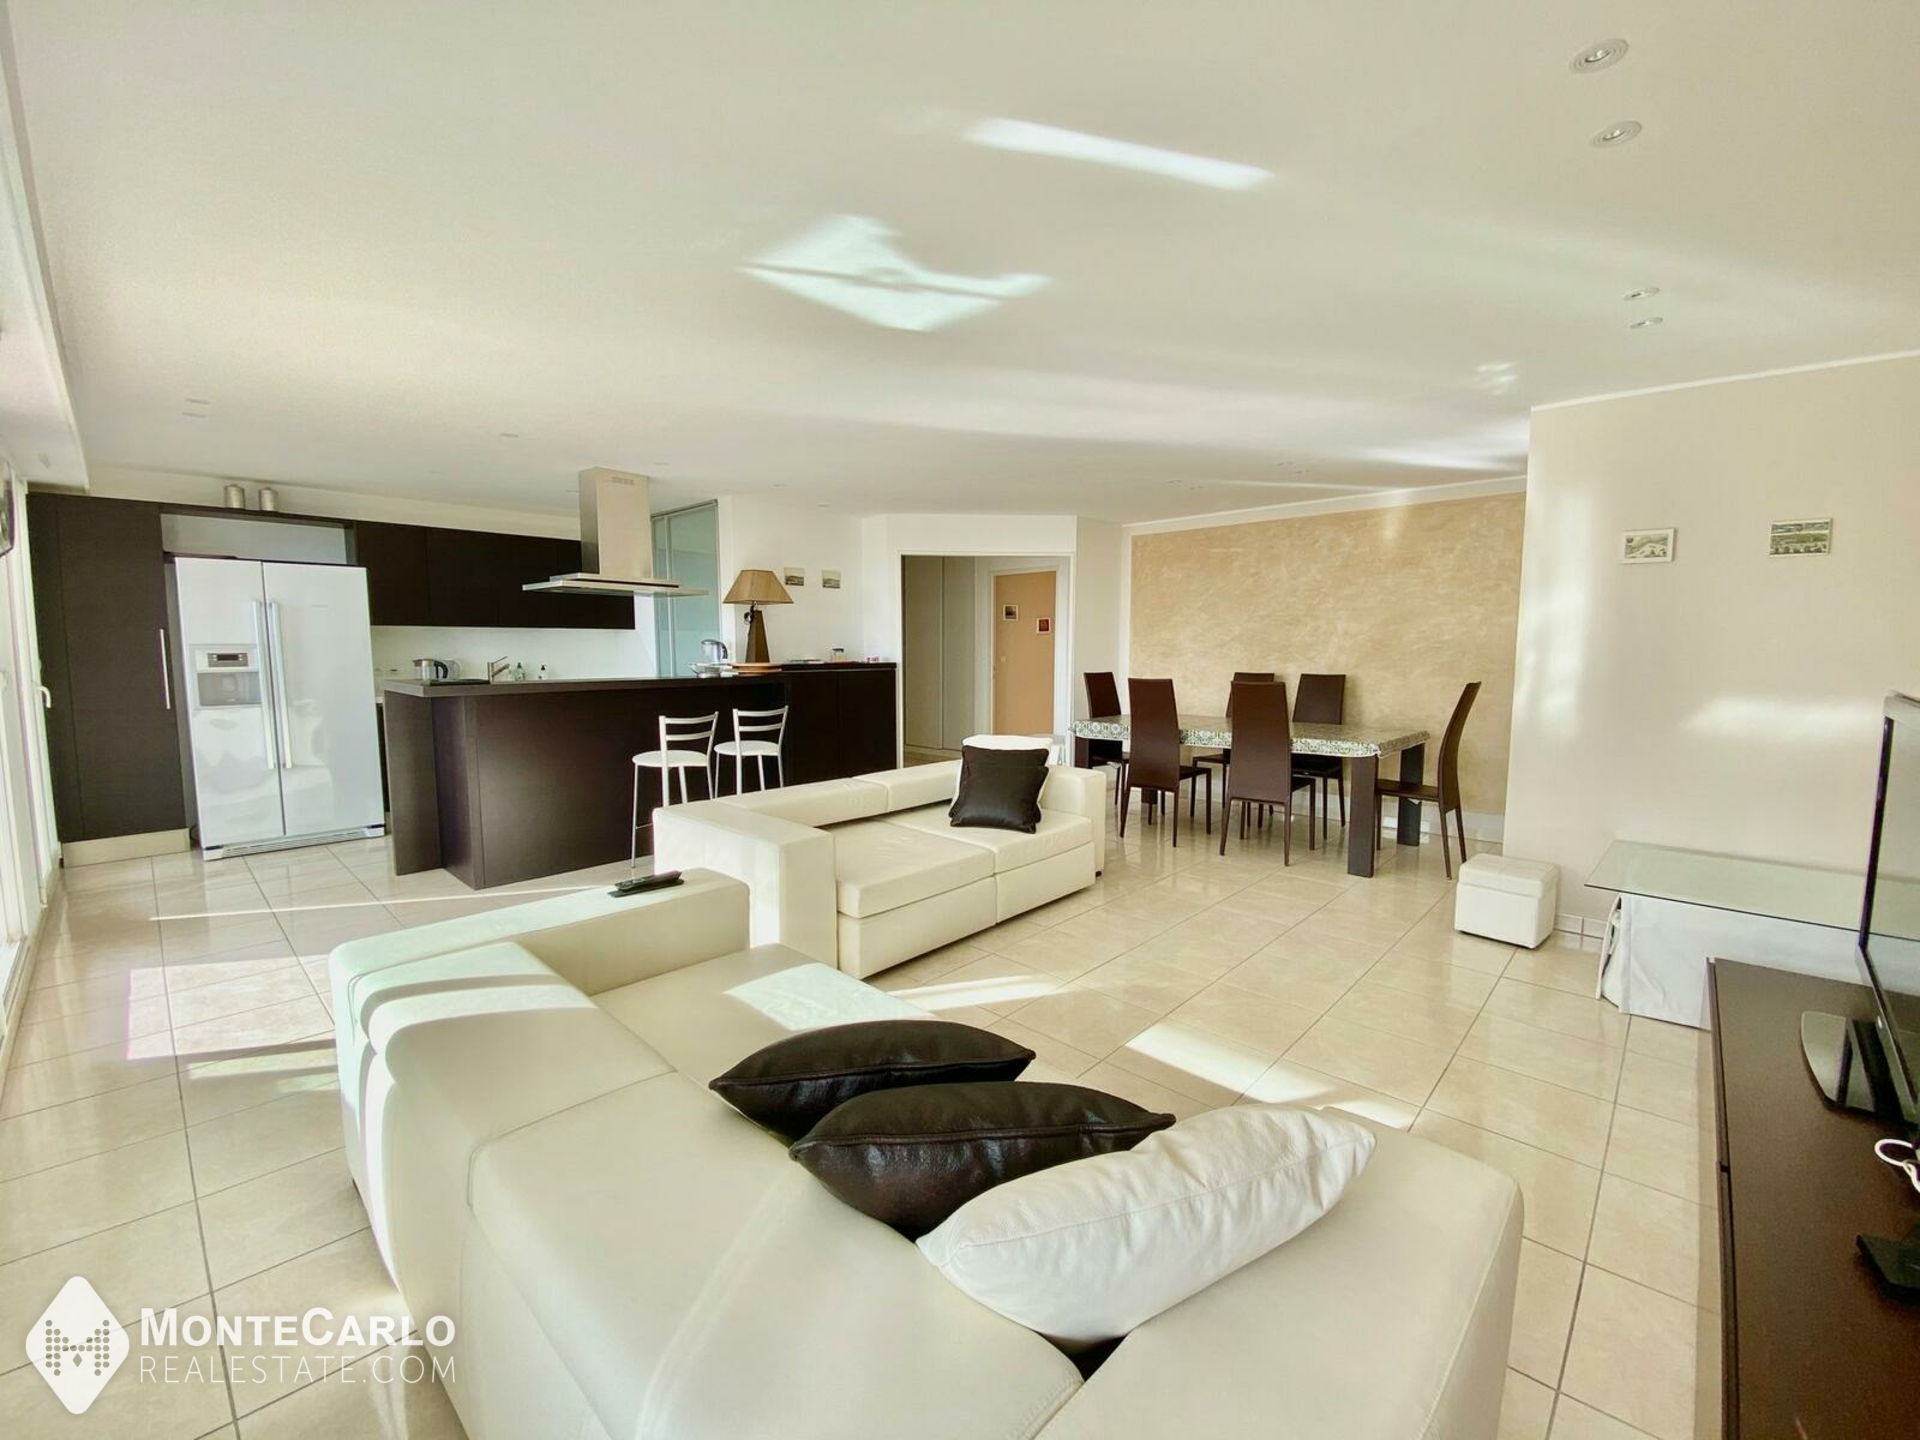 For sale Beausoleil - Apartment / 3 rooms : 1 135 000 € | Monte-Carlo Real Estate [4364173]